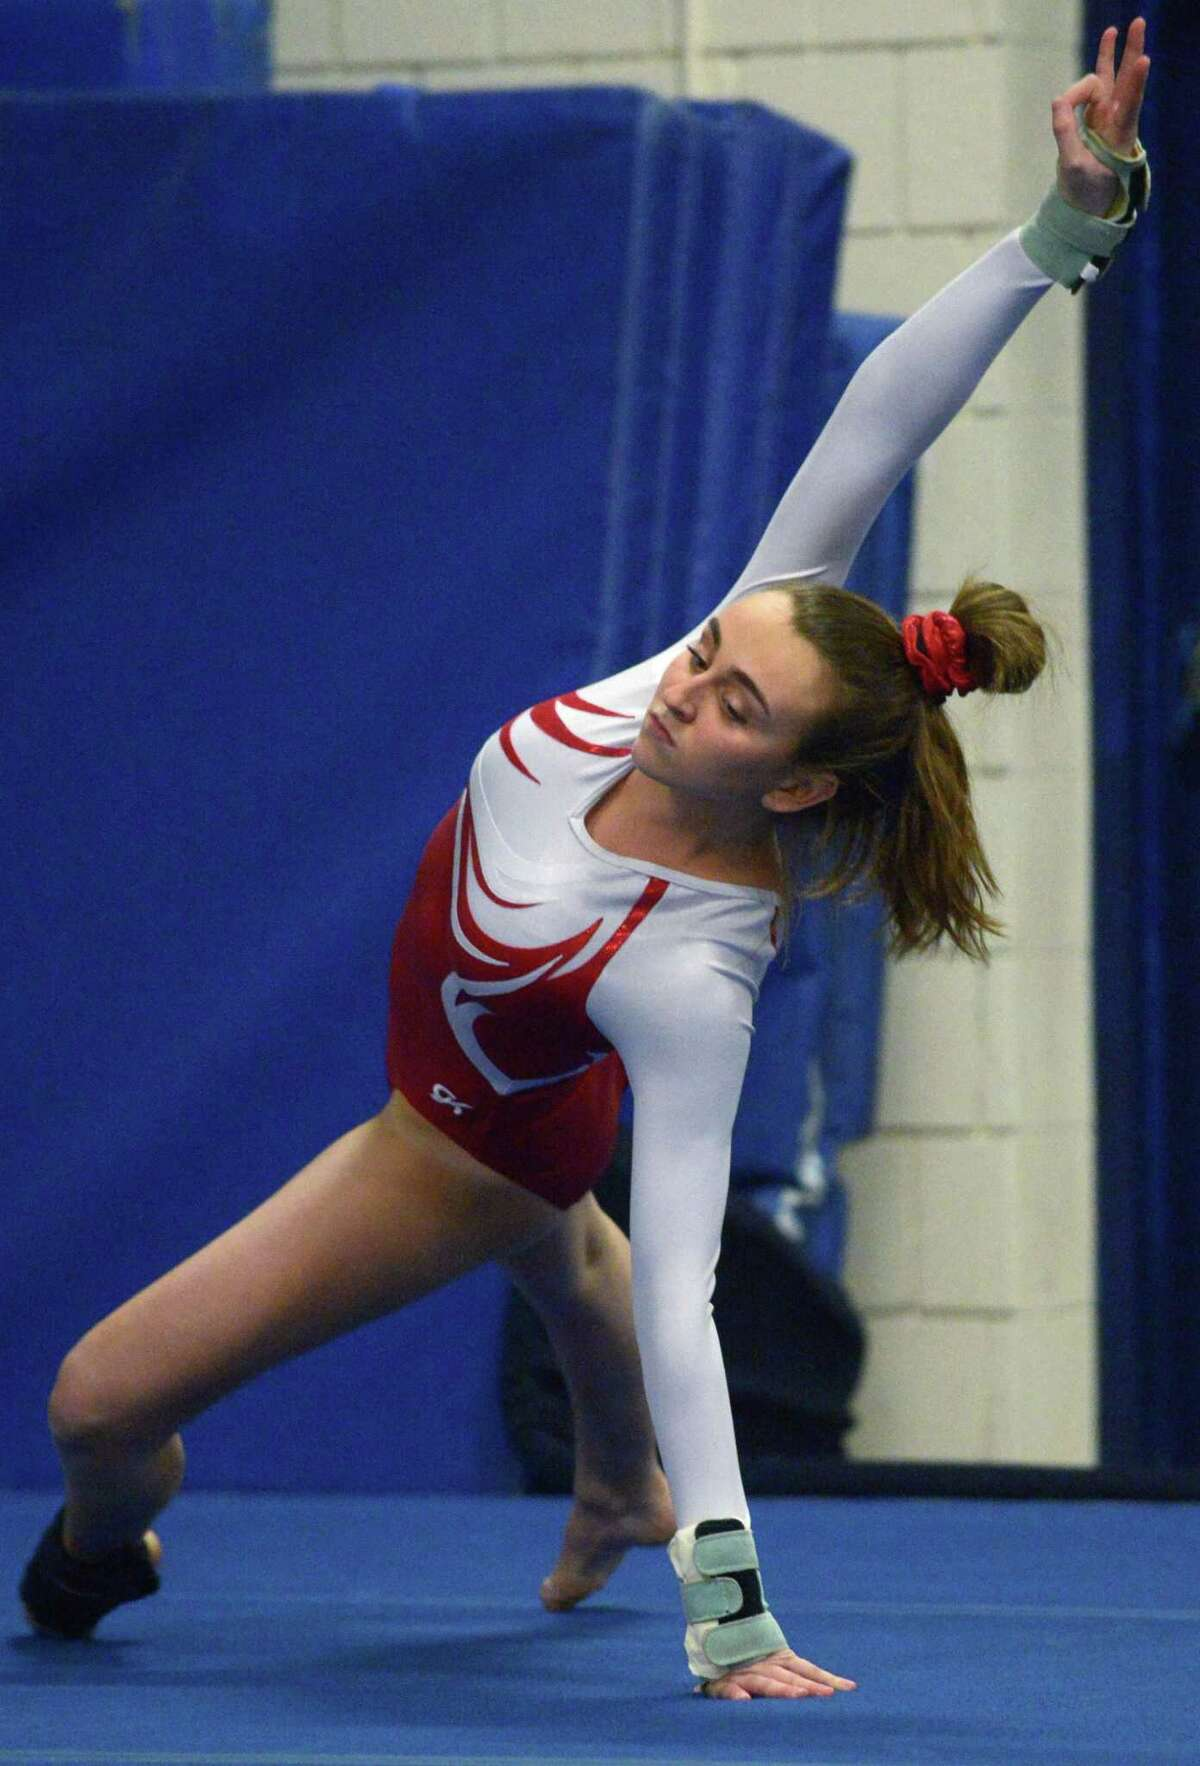 Greenwich's Gianna Cardini, shown in a Jan. 4 meet, was first in the vault against Darien on Jan. 12.